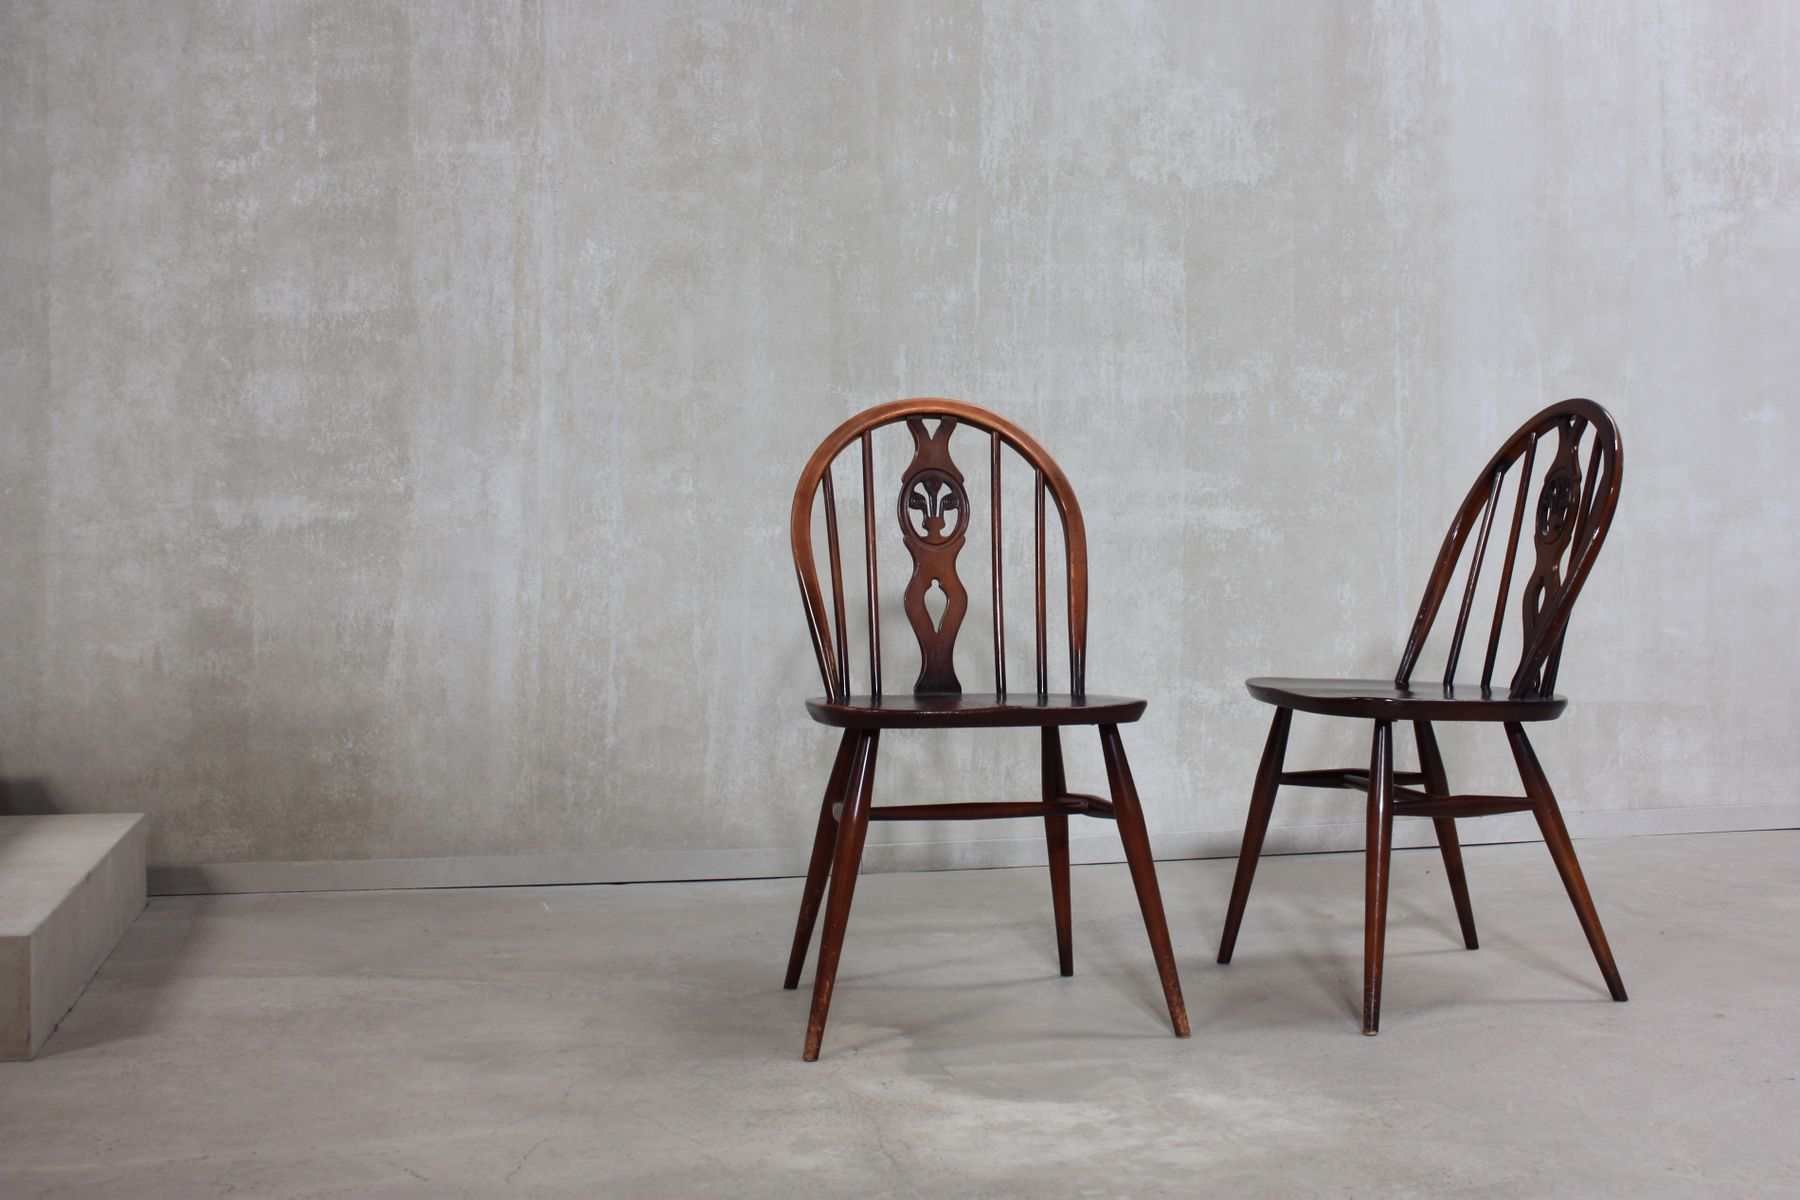 371 amp 371A Windsor Dining Chairs by Lucian Ercolani for  : 371 371a windsor dining chairs by lucian ercolani for ercol 1960s set of 6 15 from www.pamono.com.au size 1800 x 1200 jpeg 155kB